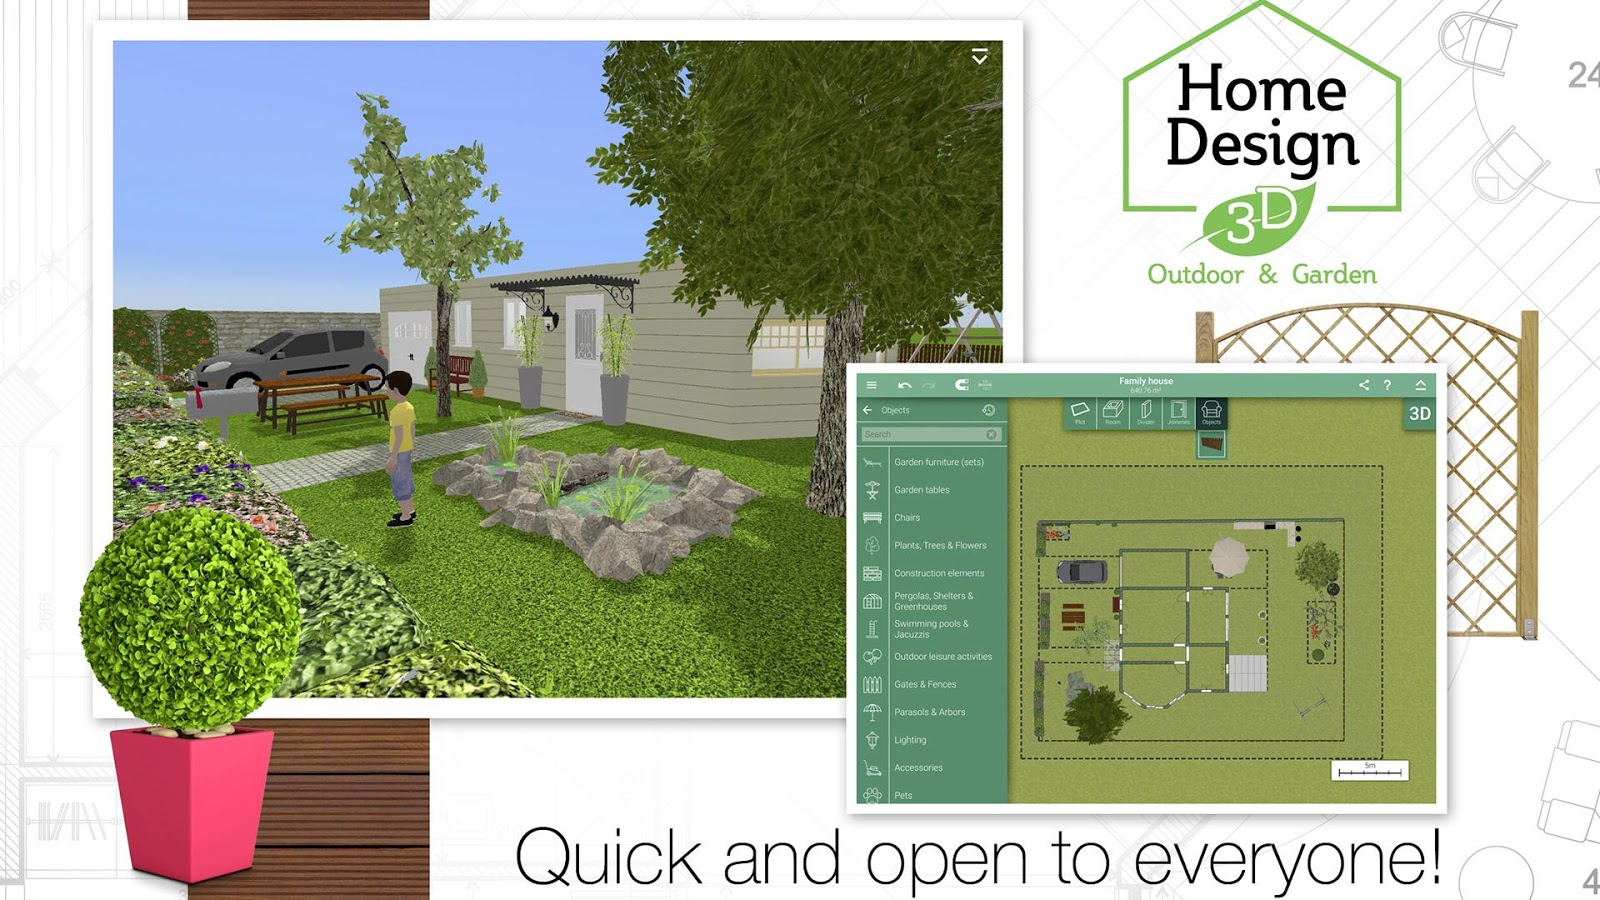 home design 3d outdoorgarden screenshot - Garden Home Designs